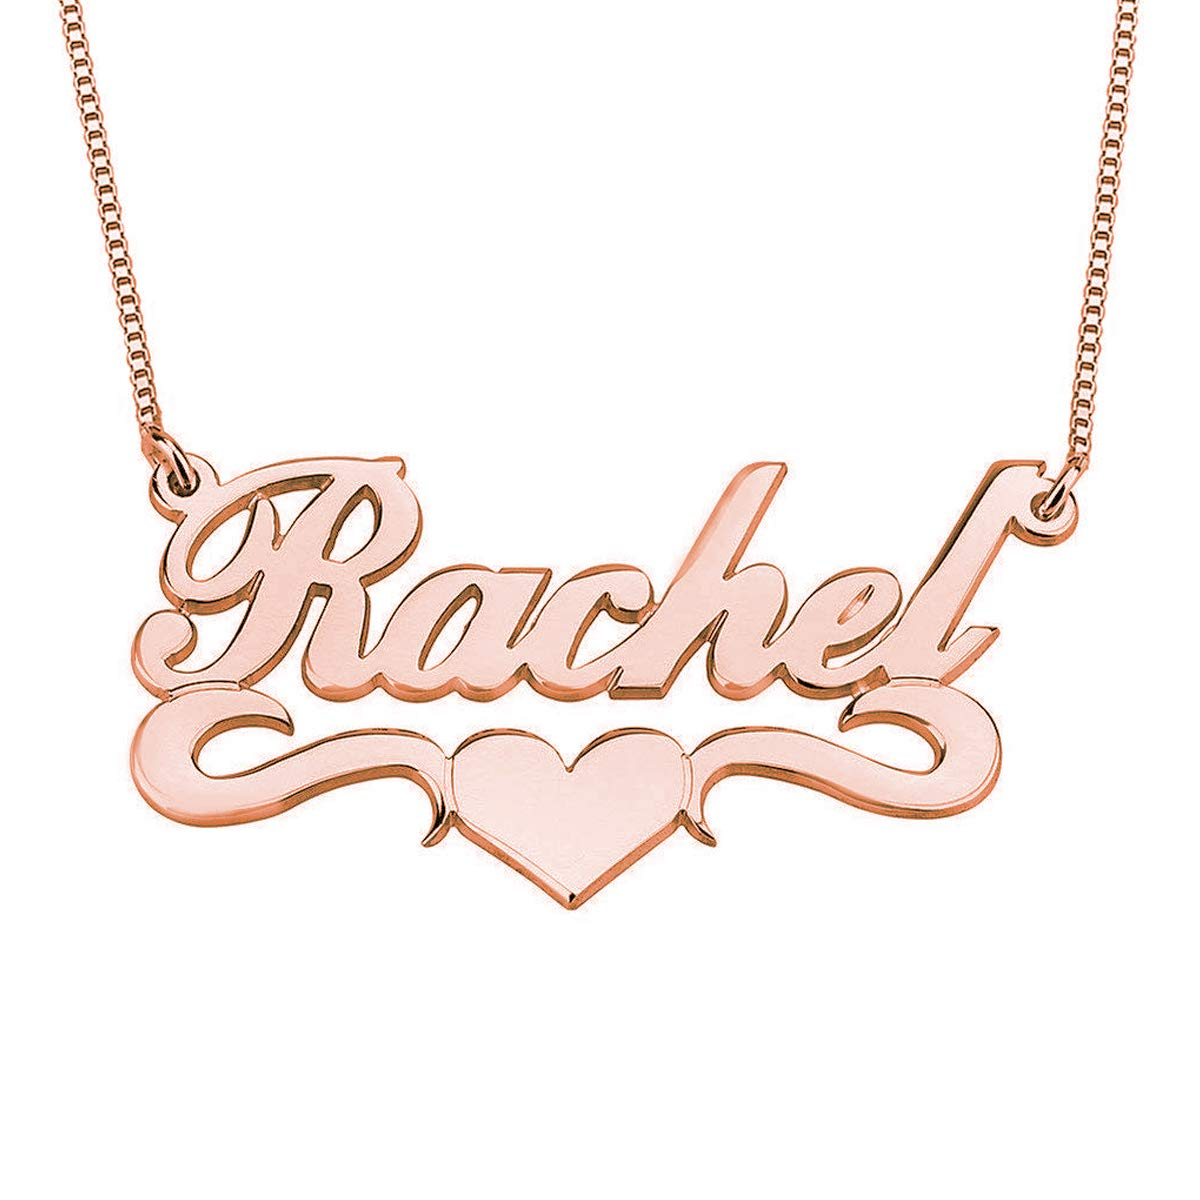 HACOOL Personalized Names Custom Name Necklace Pendant in 18K Gold Plated Custom Made with Any Name Chain (Rose Gold)